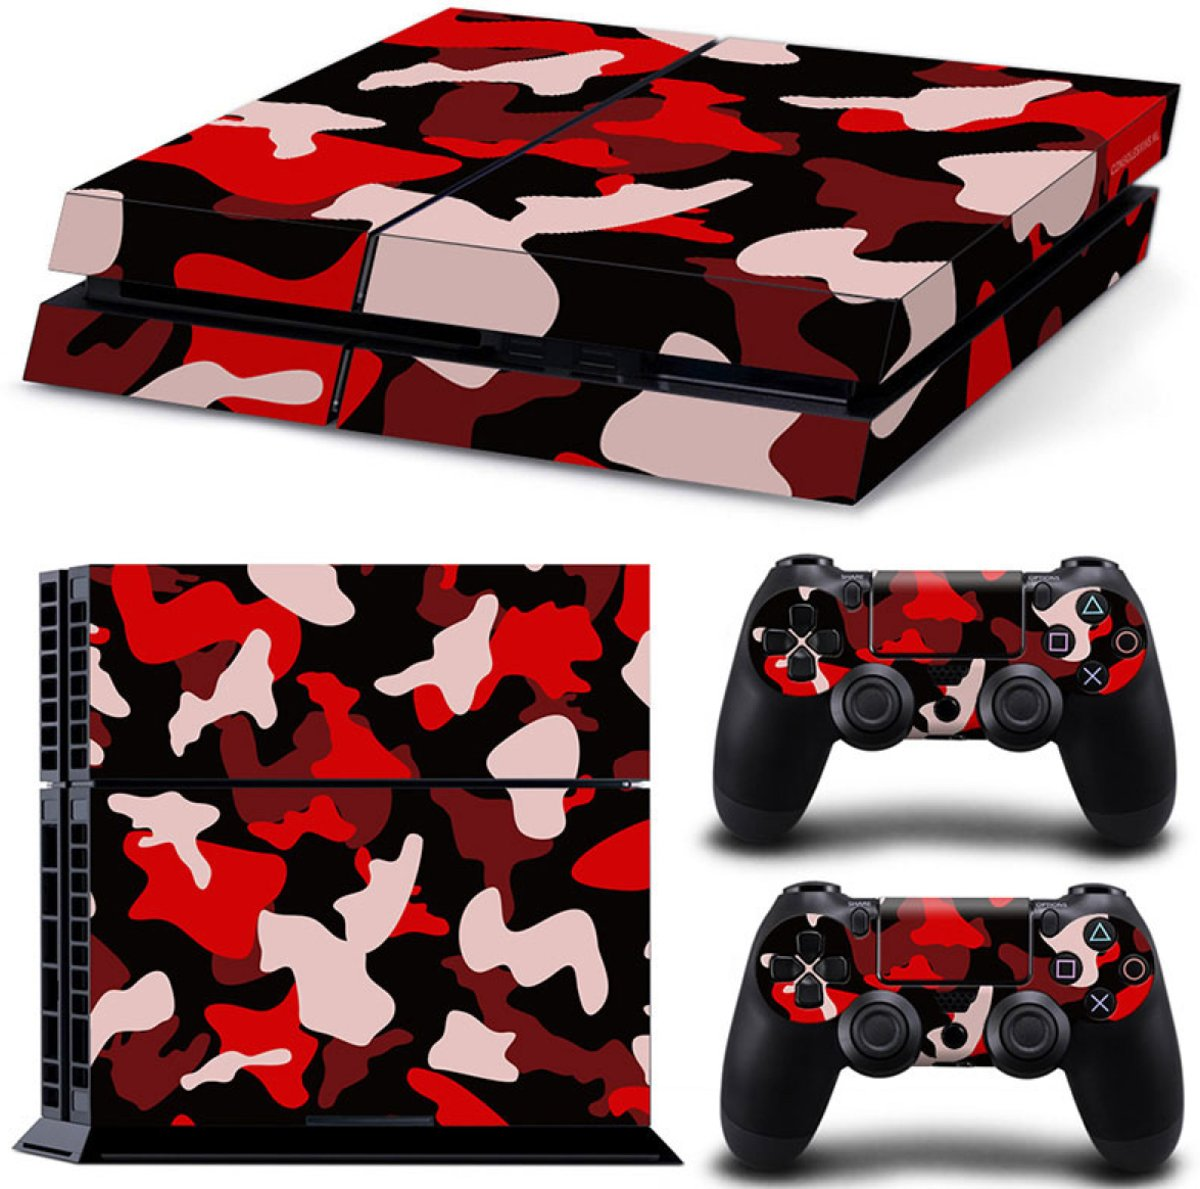 Army Camo / Rood Zwart - PS4 Console Skins PlayStation Stickers